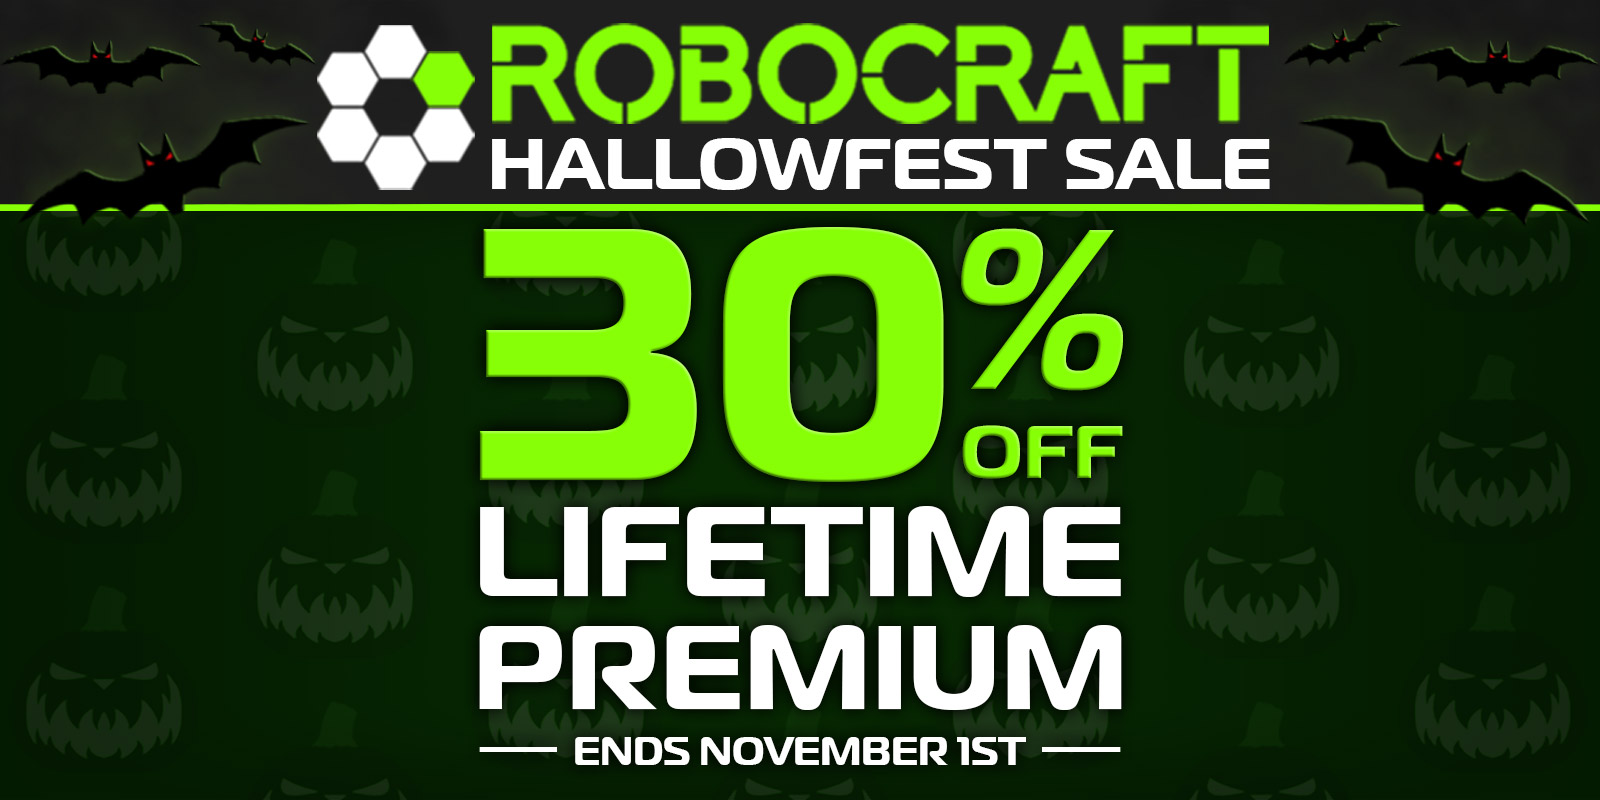 Get Deep Discount On Lifetime Premium In Our Halloween Sale. This Halloween  Weu0027re Slash(er)ing 30% Off Lifetime Premium!!! A No Brainer Of A Deal For  All ...